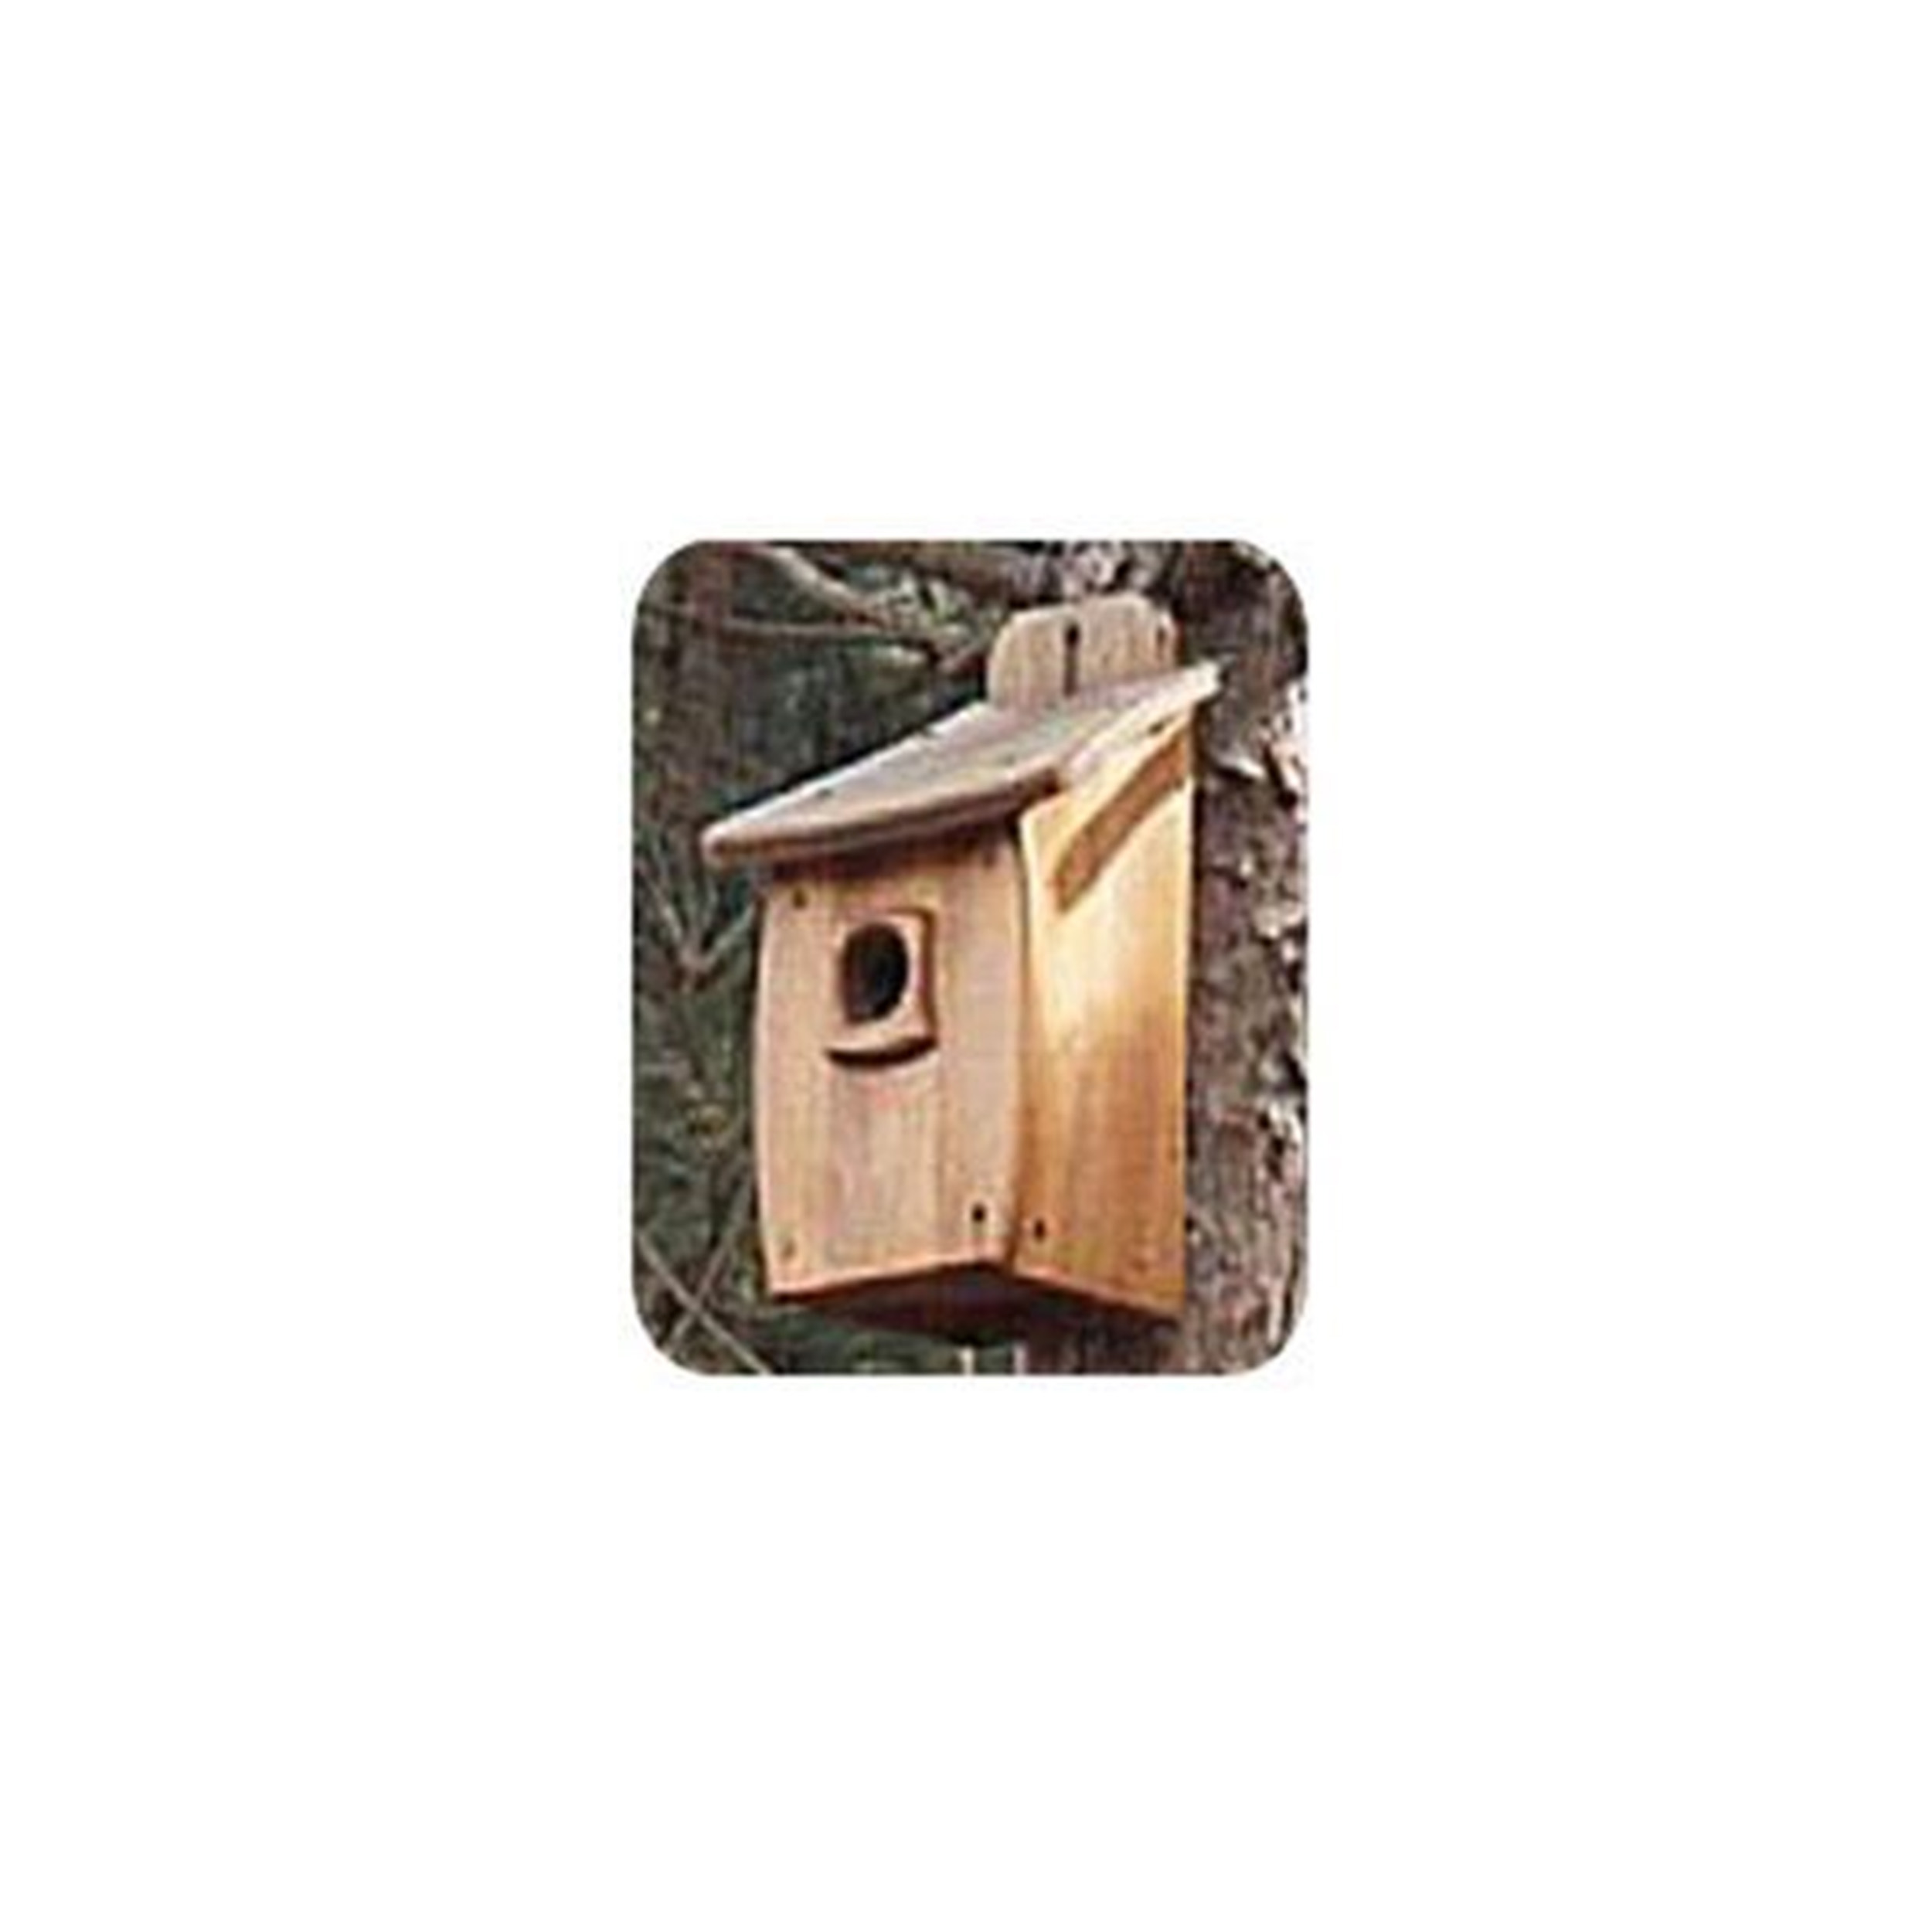 Woodworking Project Paper Plan to Build Extra Large Birdhouse by